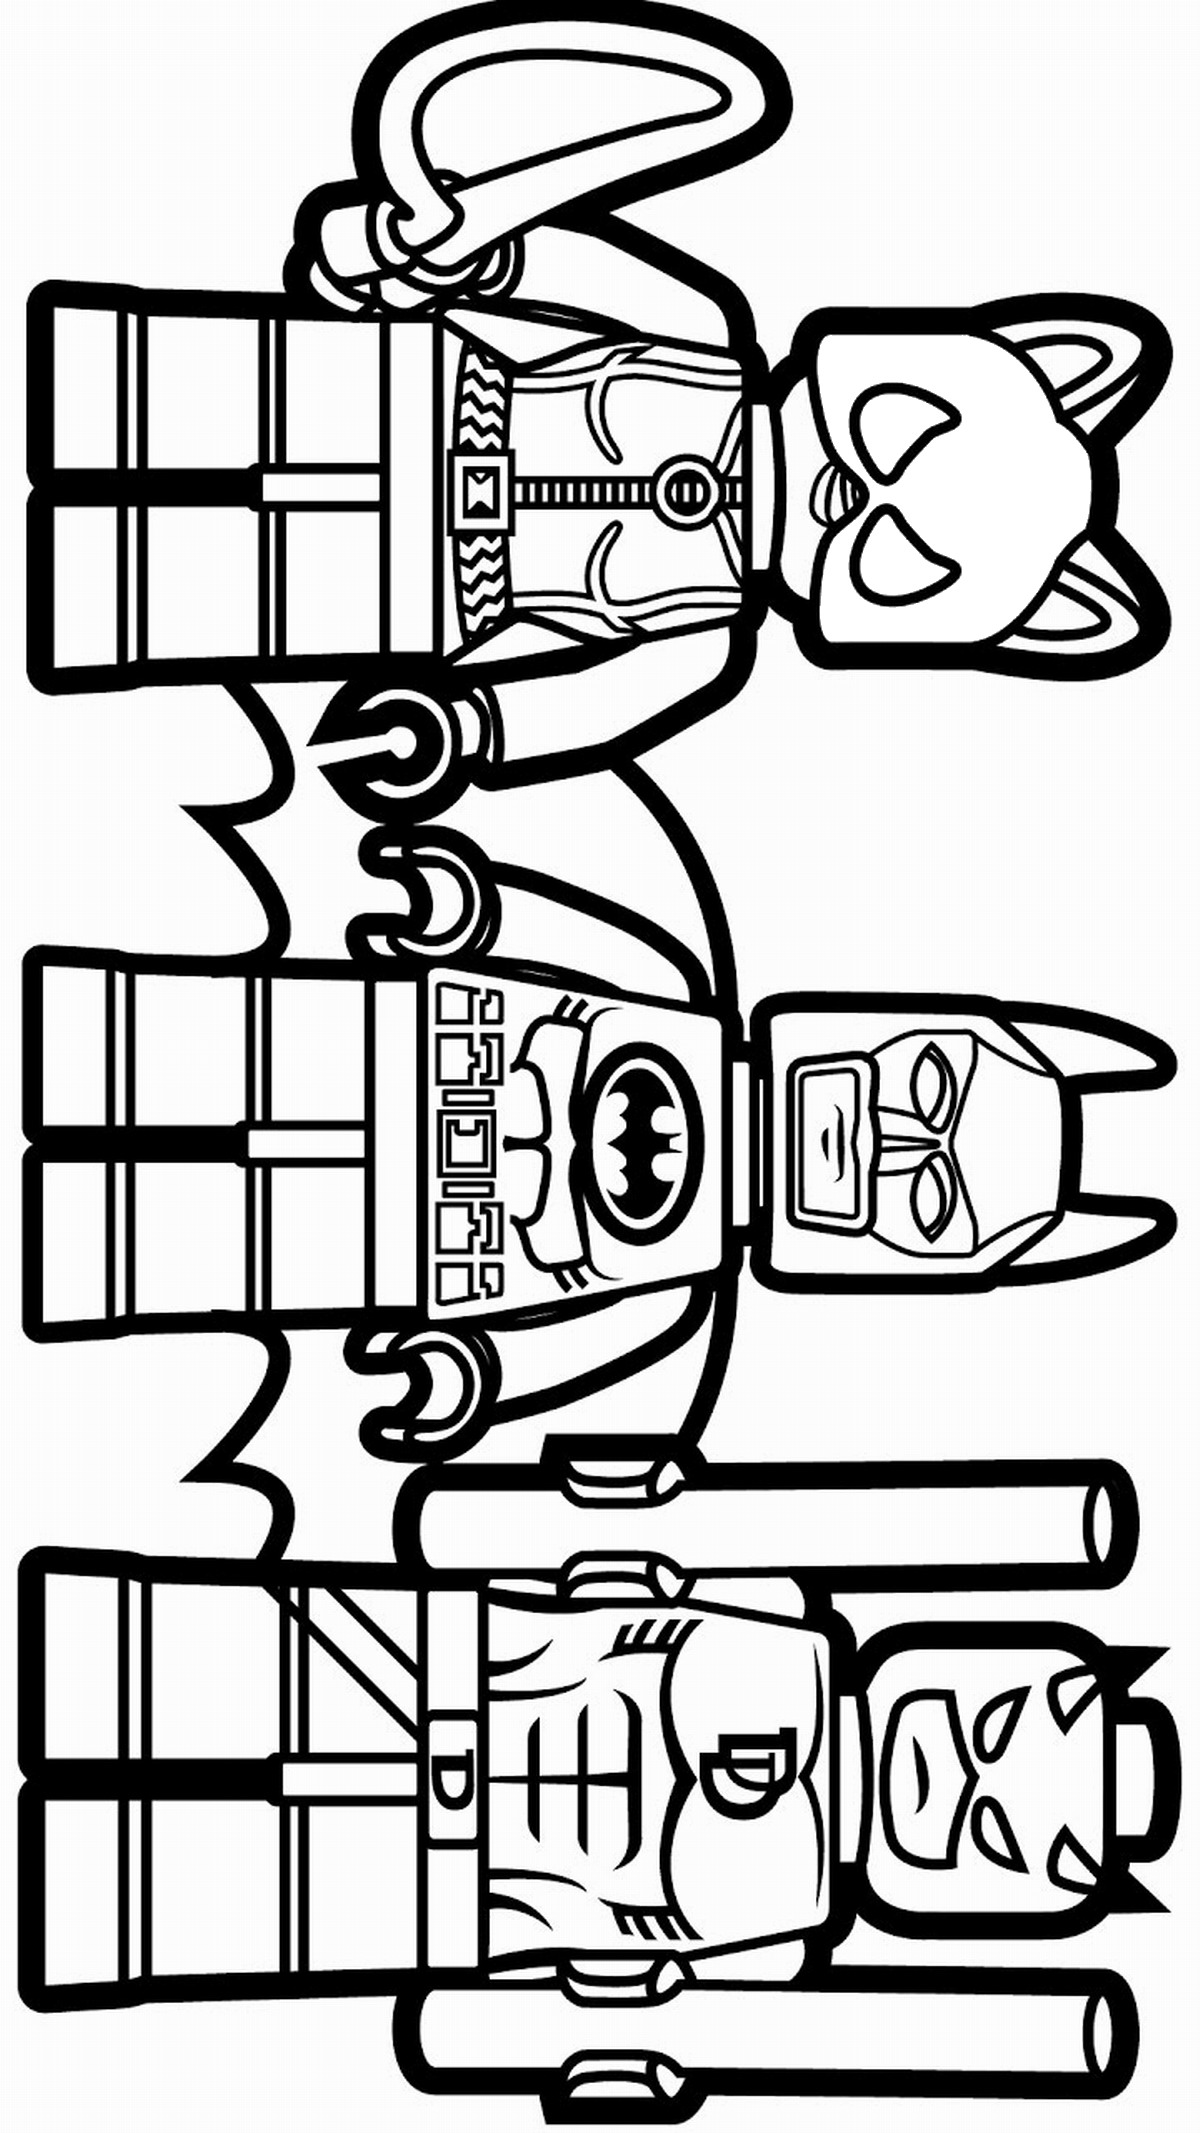 batman lego coloring free printable lego coloring pages for kids lego batman coloring